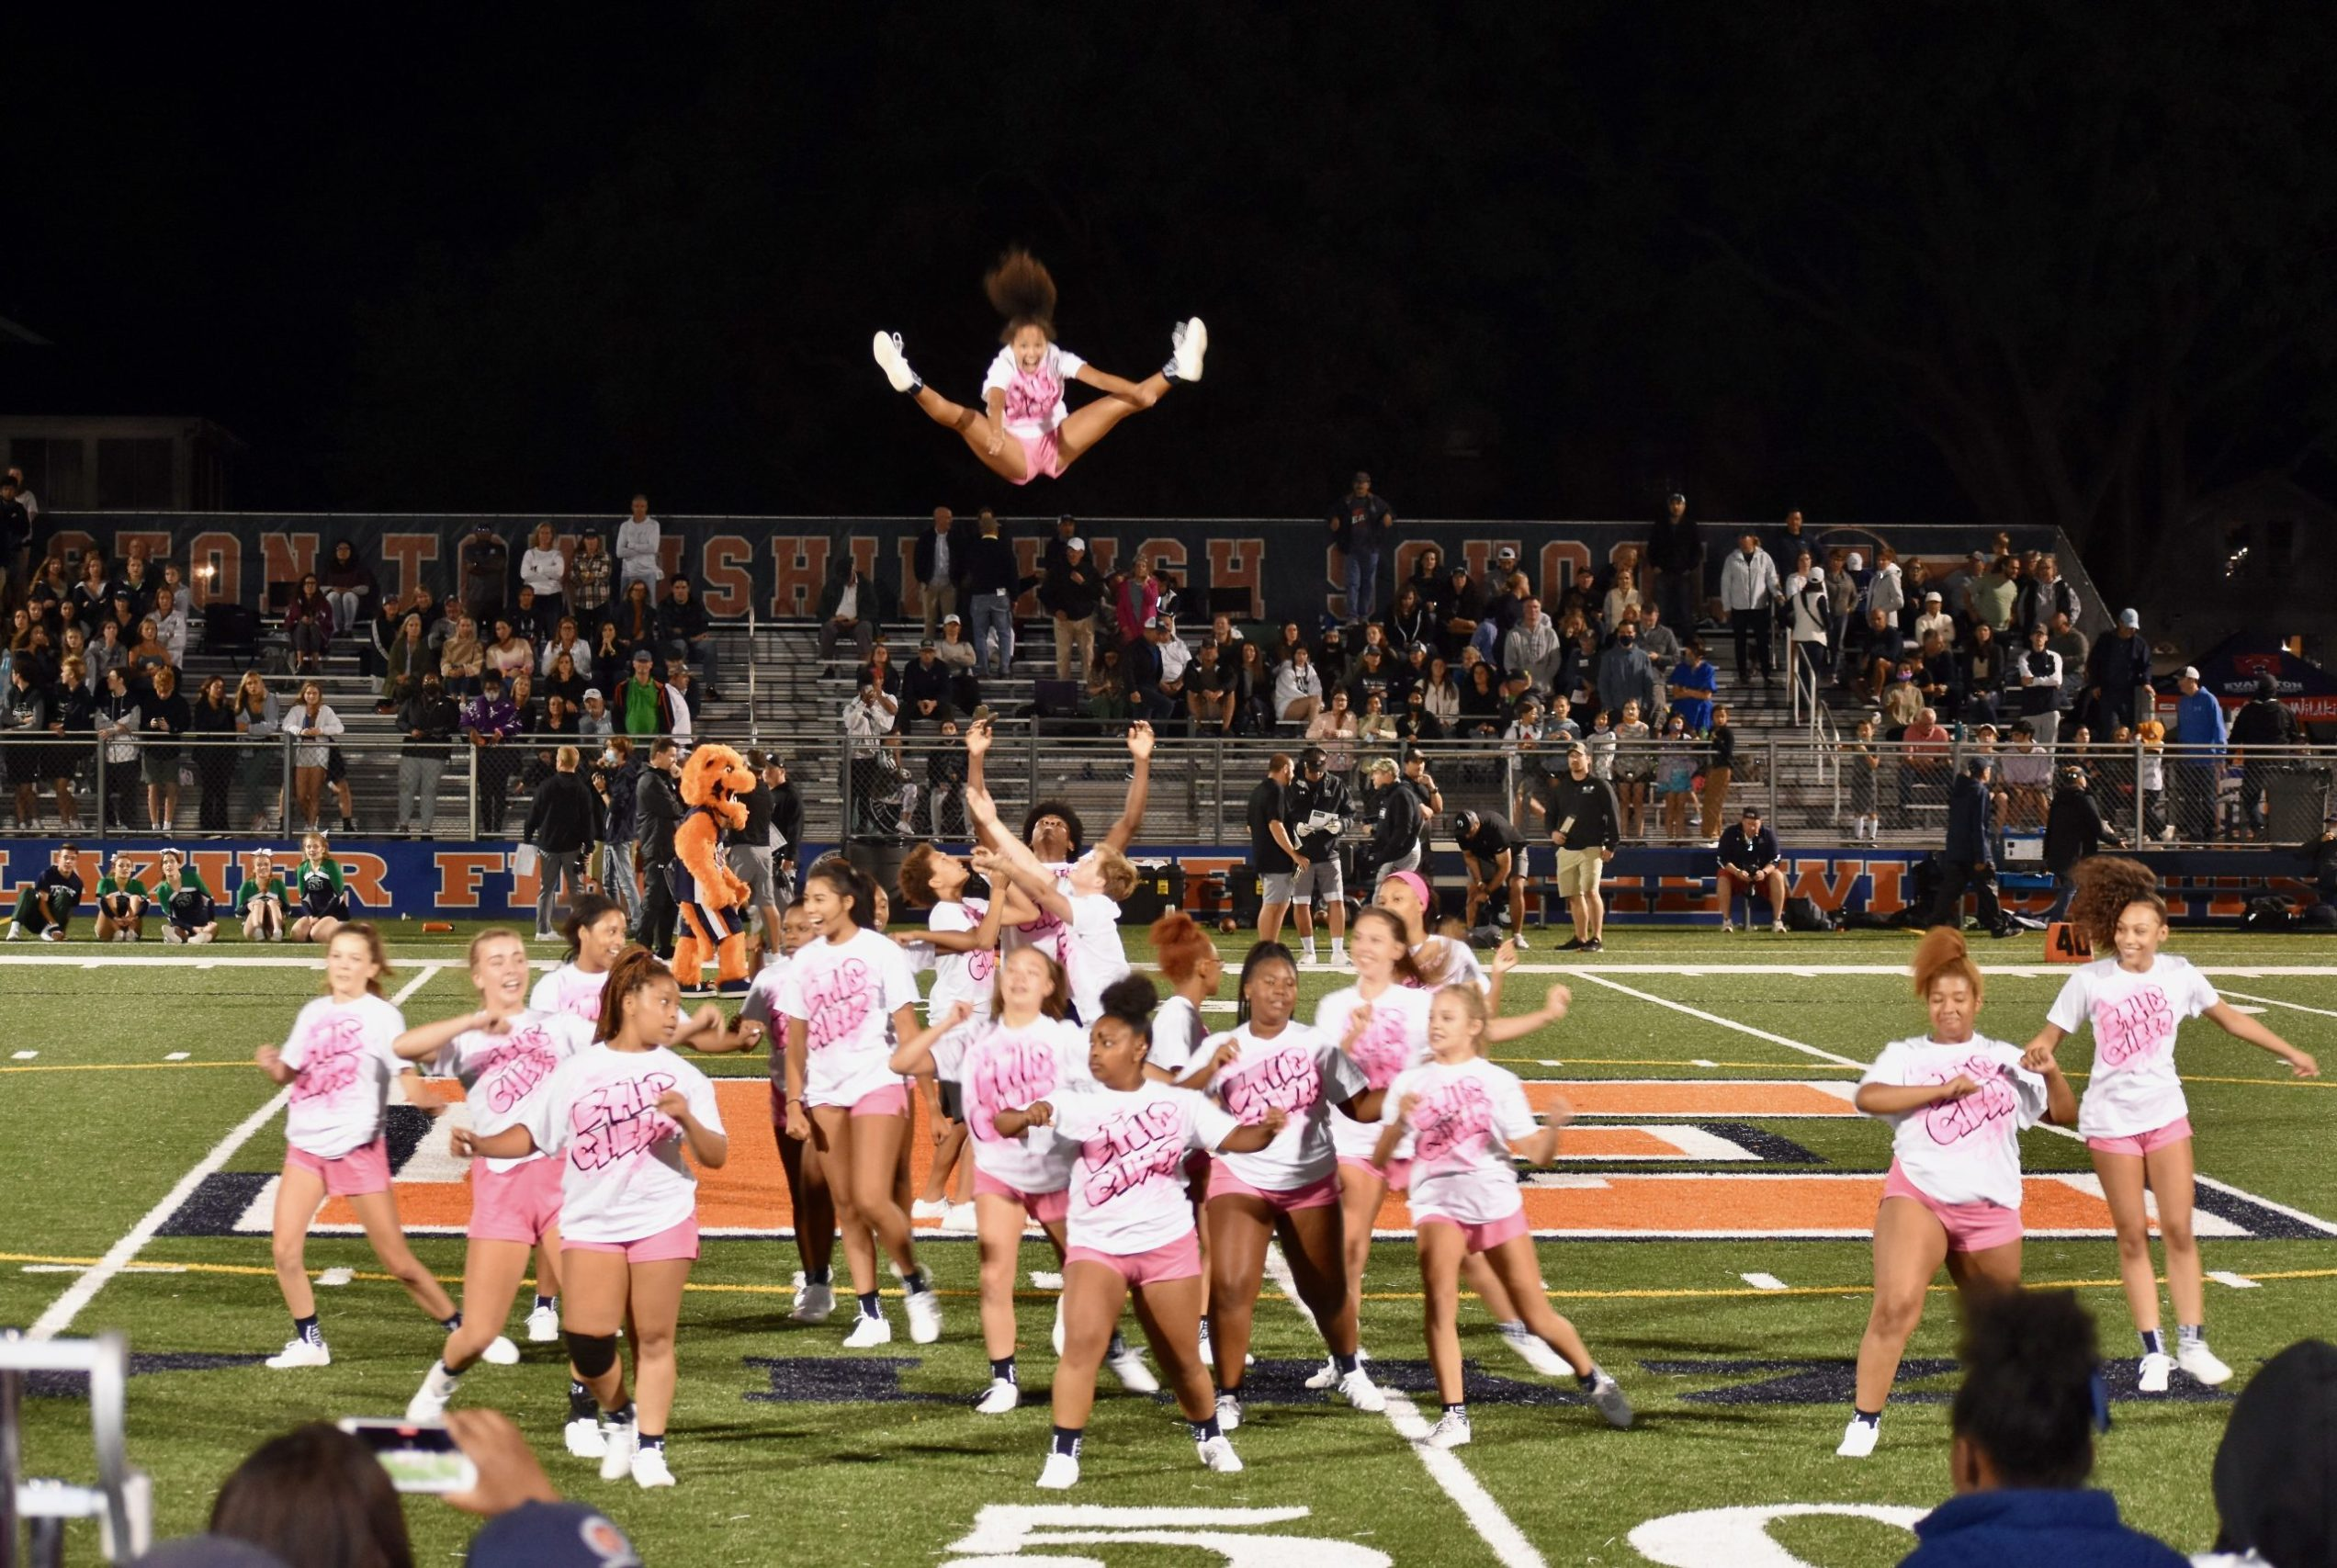 ETHS Homecoming photos